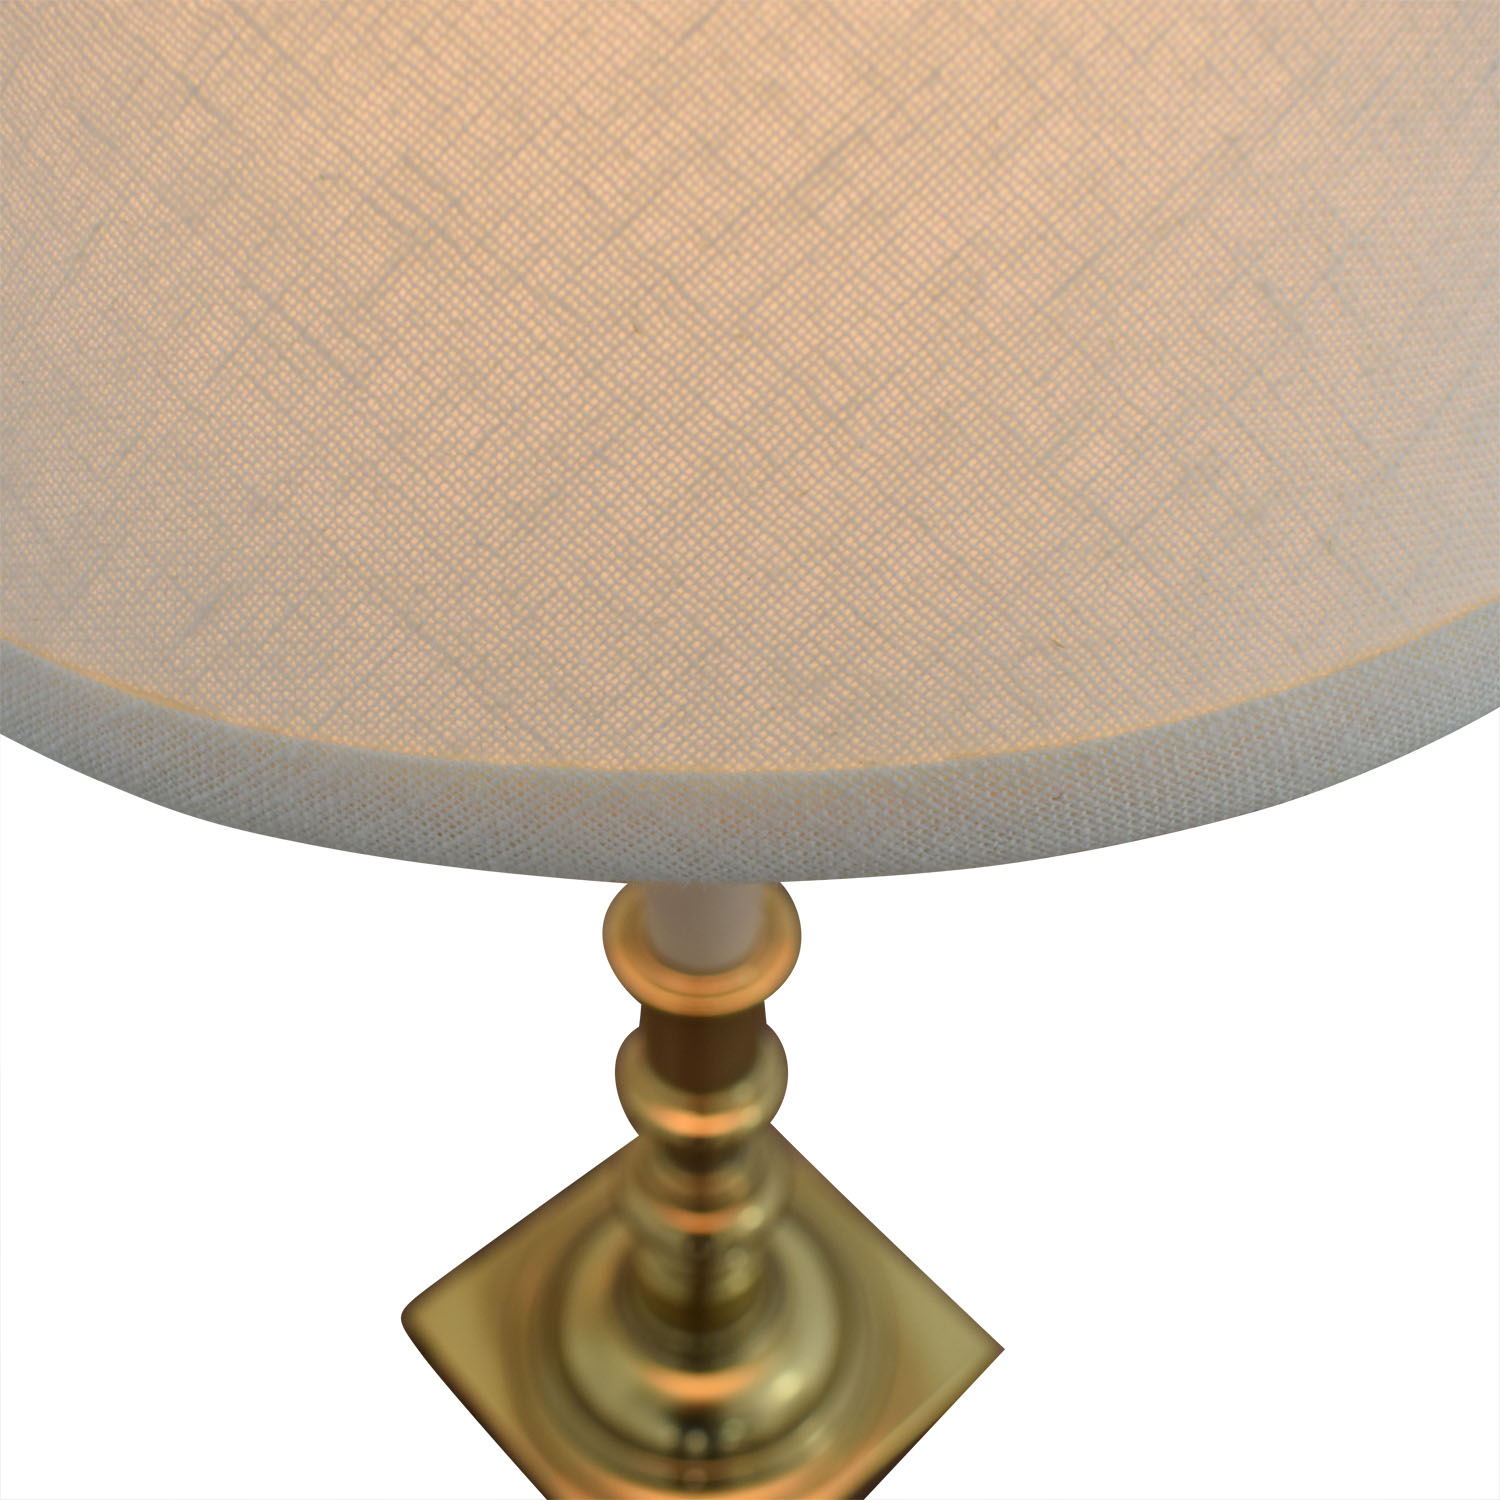 Stiffel Beige And Brass Table Lamp sale